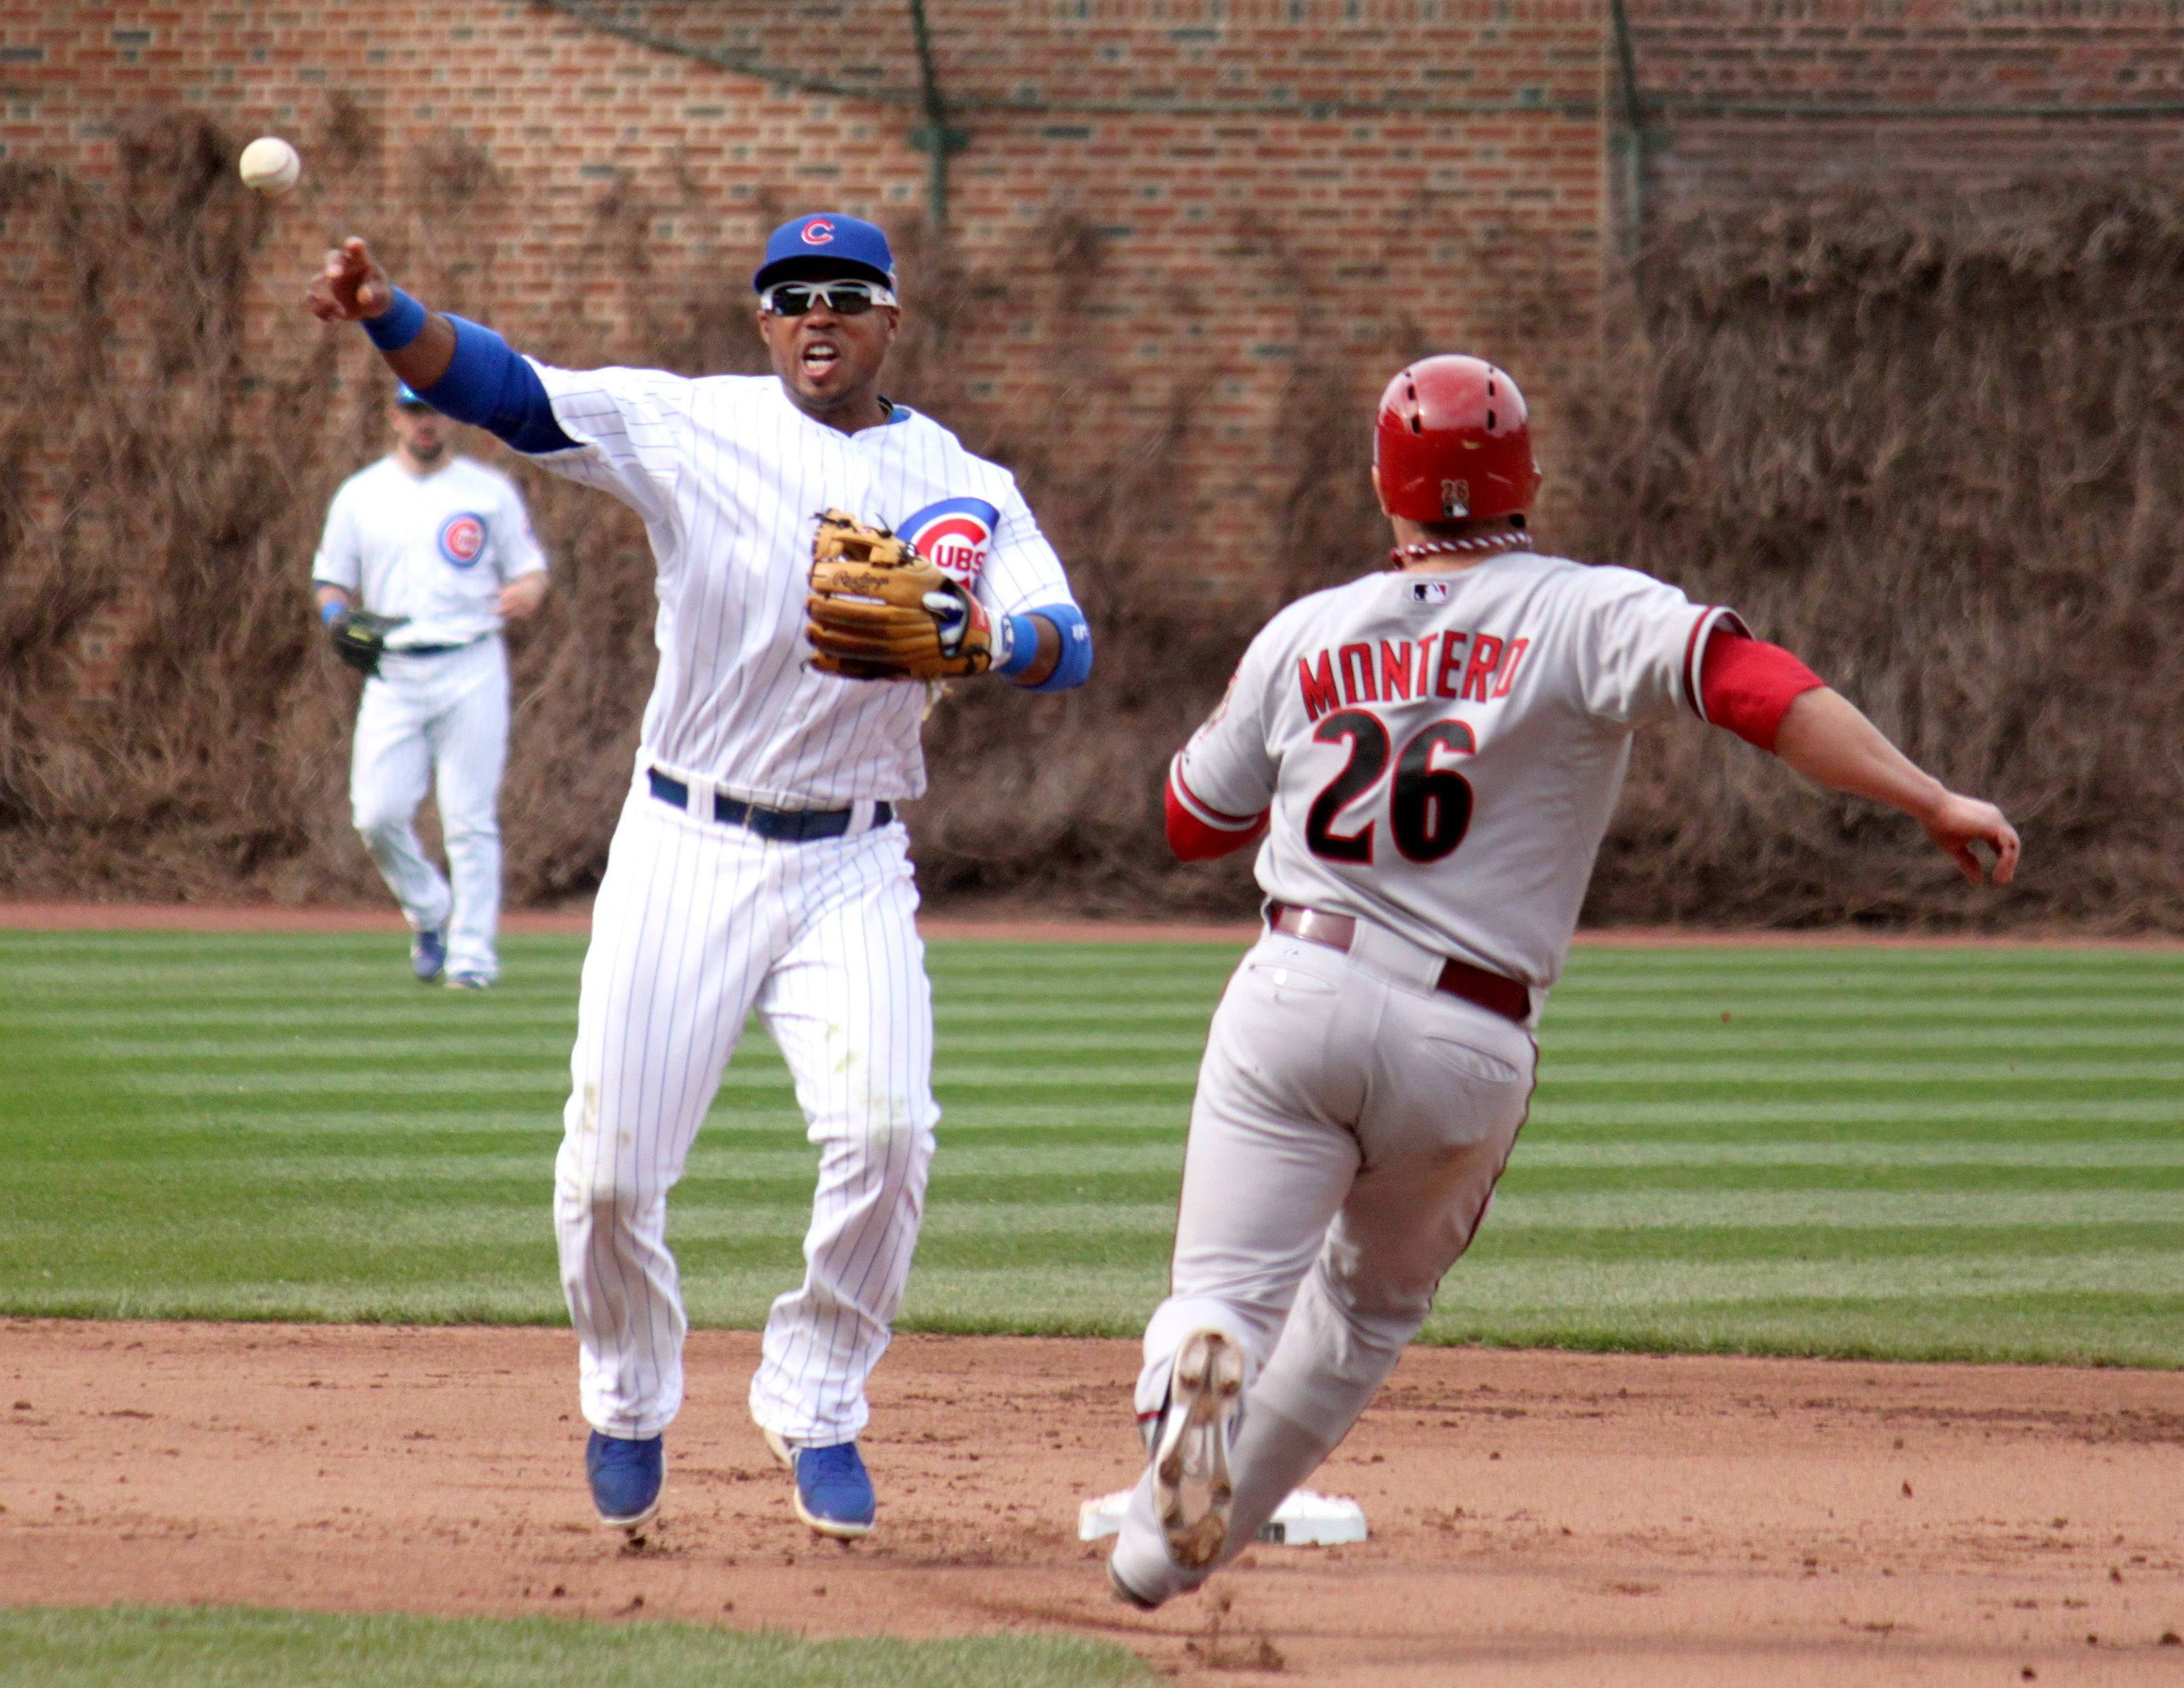 Chicago Cubs player Luis Valbuena completes a double play against the Arizona Diamondbacks at Wrigley Field on April 24.